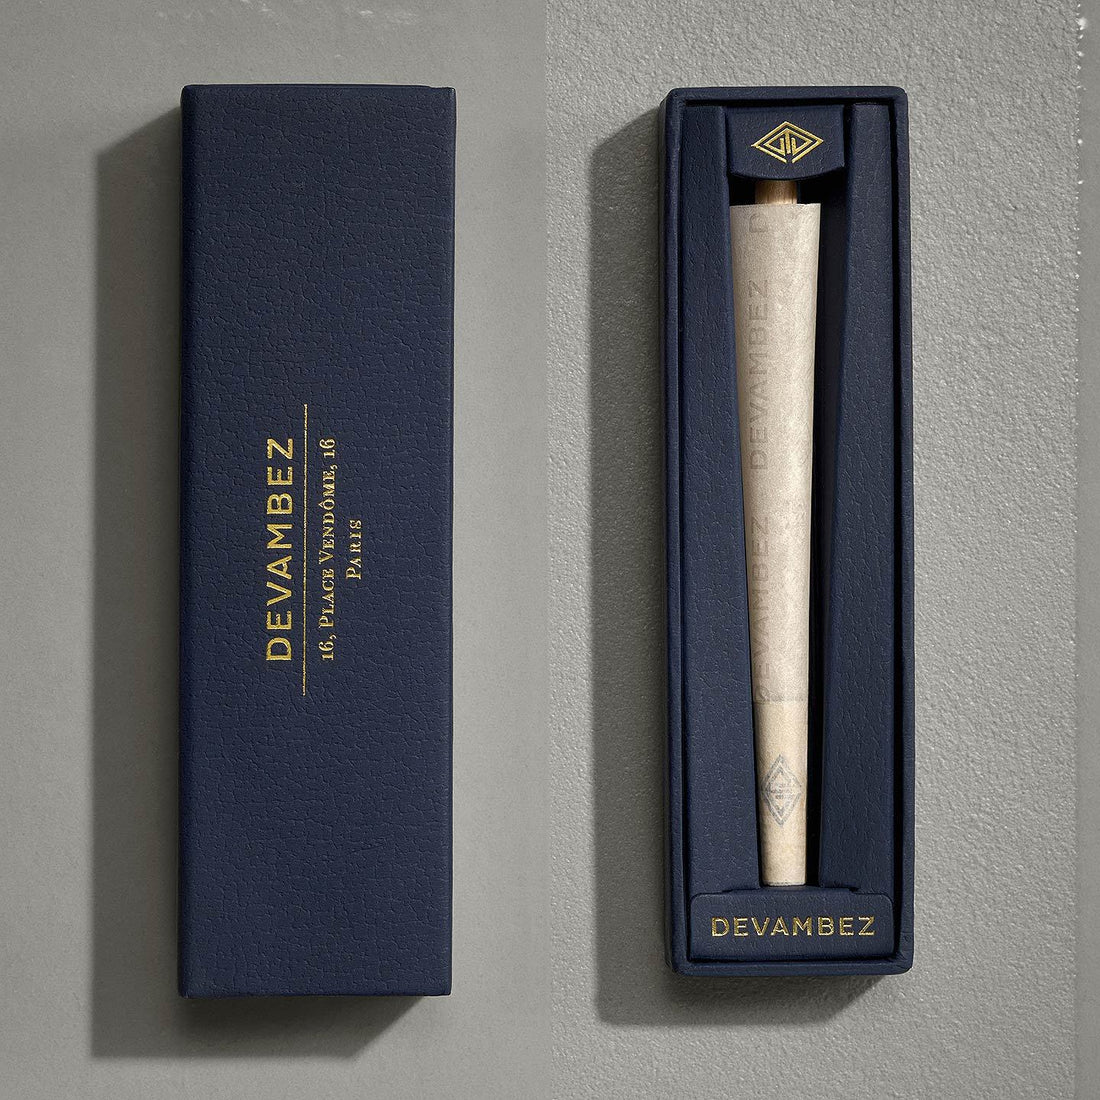 The Vendôme 10 - Pre rolled - Devambez